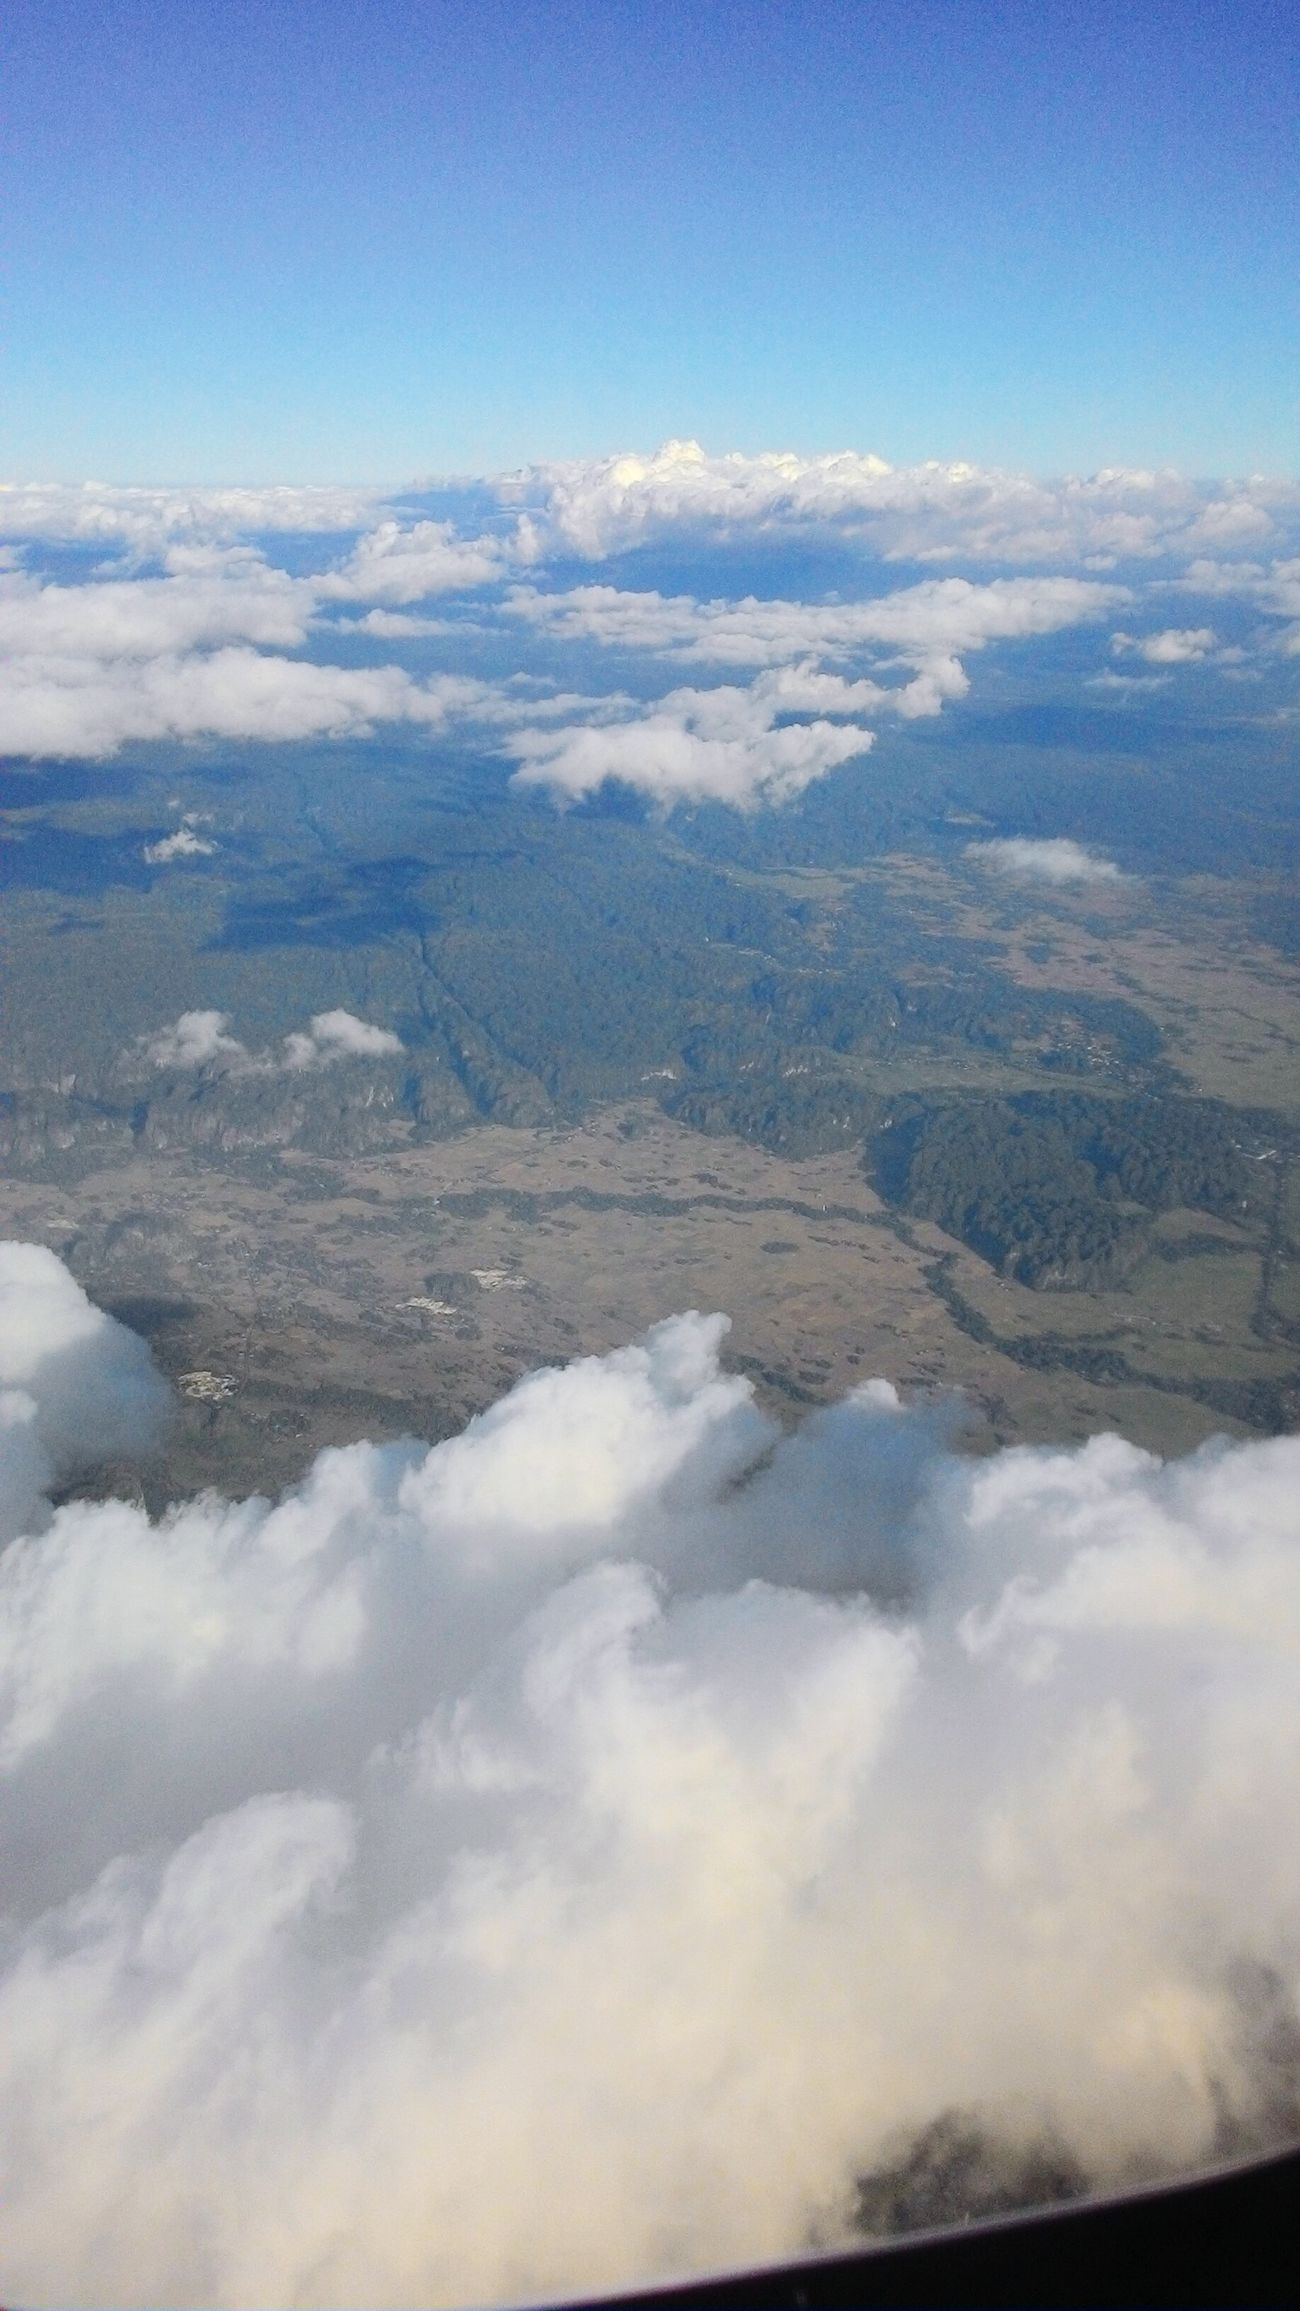 View From An Airplane Cloud, Sky & Mountain Beautyofindonesia Kitorangexplore Enjoying The View